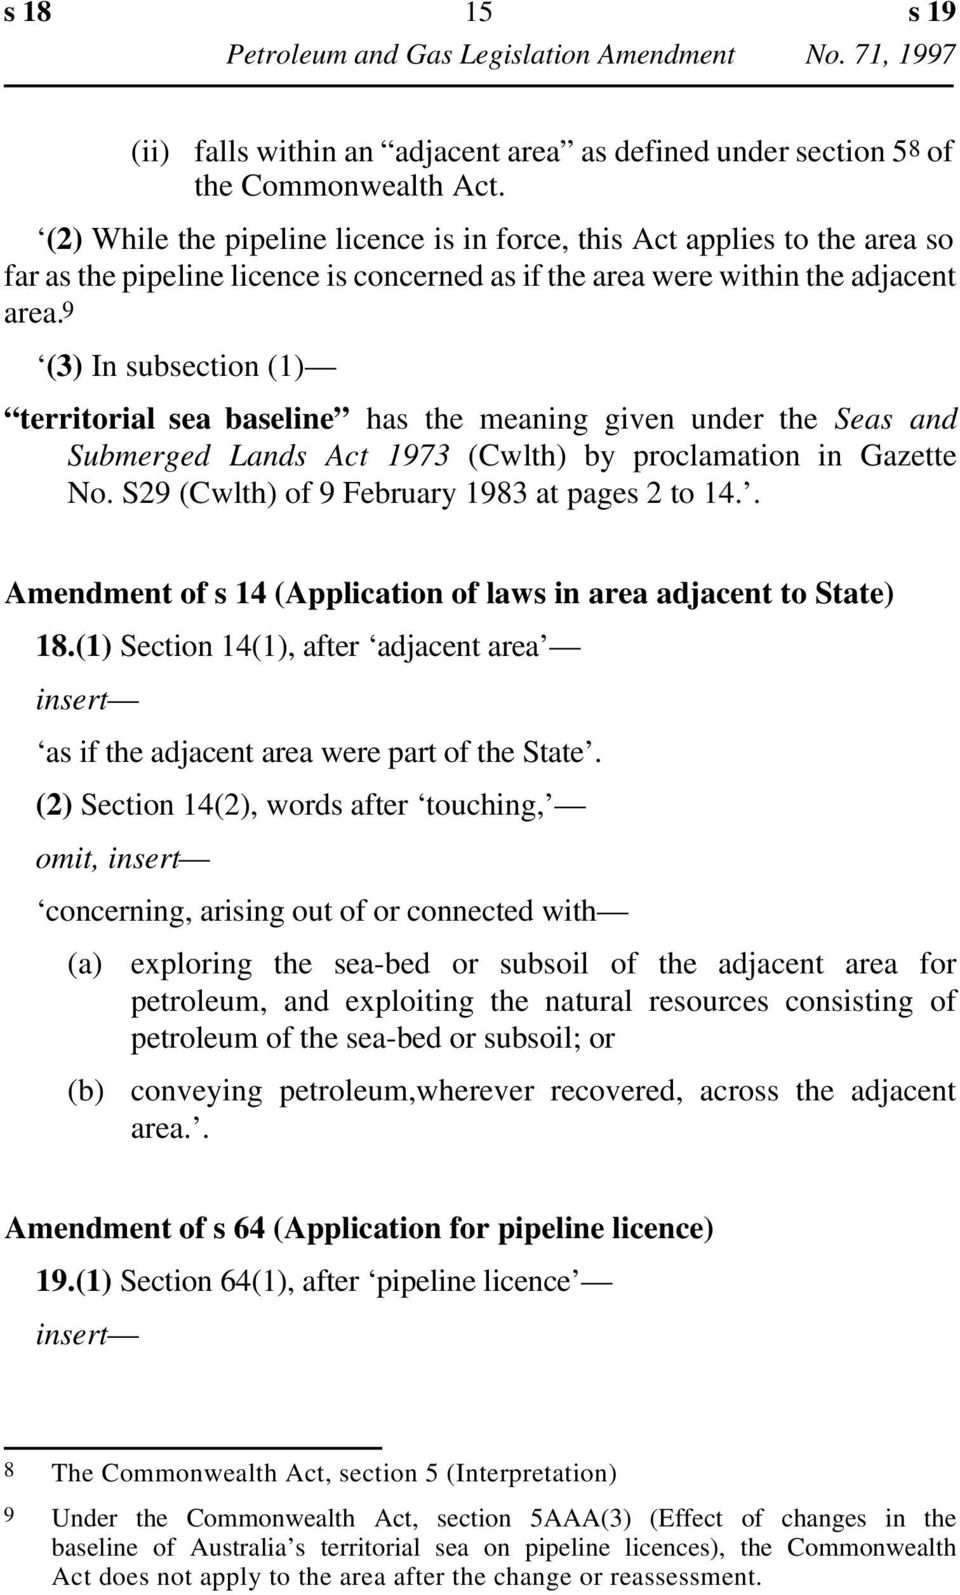 9 (3) In subsection (1) territorial sea baseline has the meaning given under the Seas and Submerged Lands Act 1973 (Cwlth) by proclamation in Gazette No.